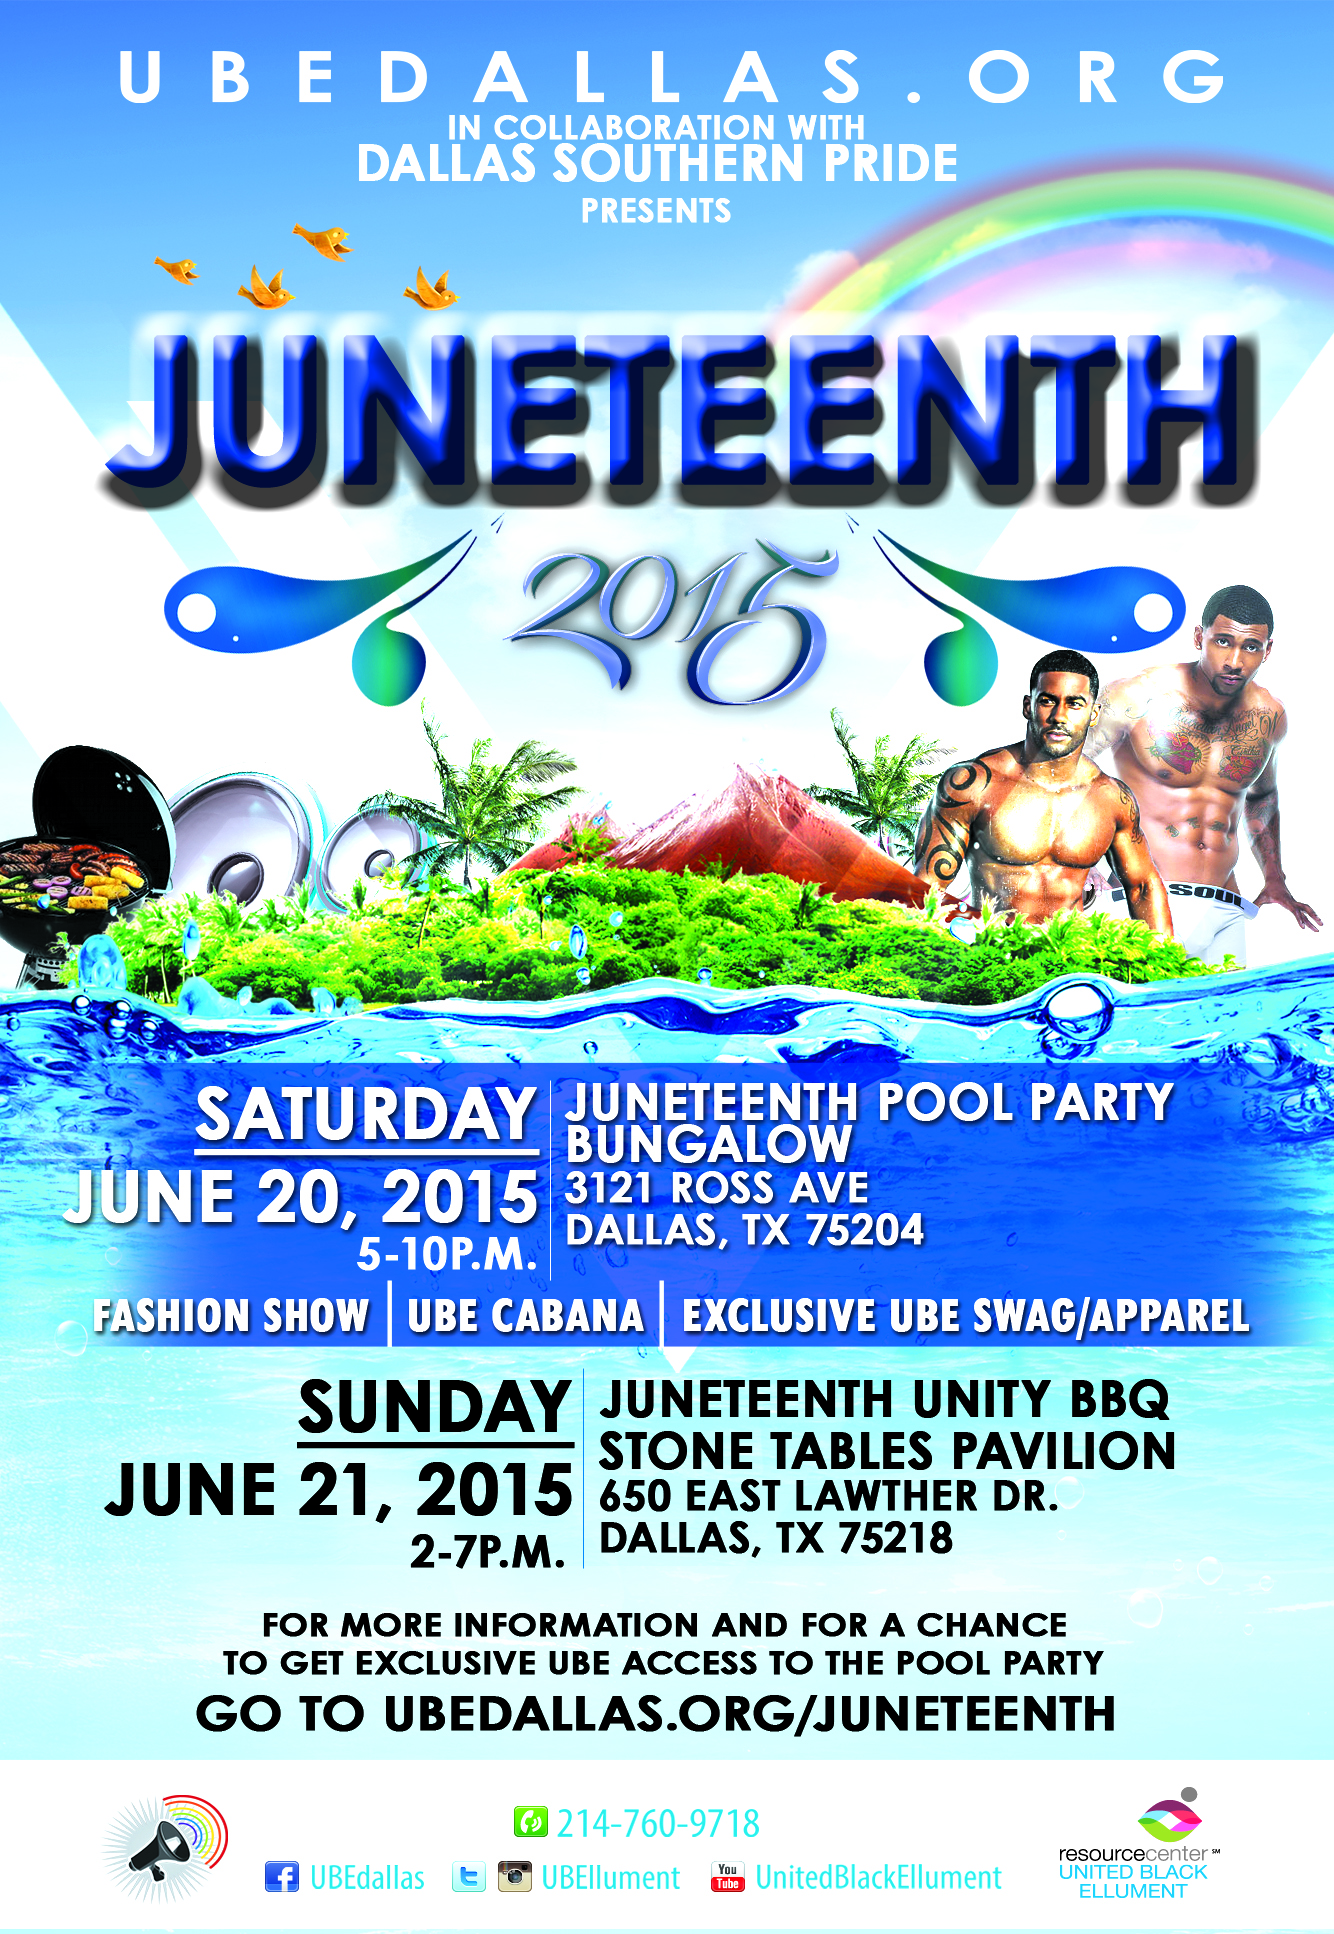 JUNETEENTH POOL PARTY